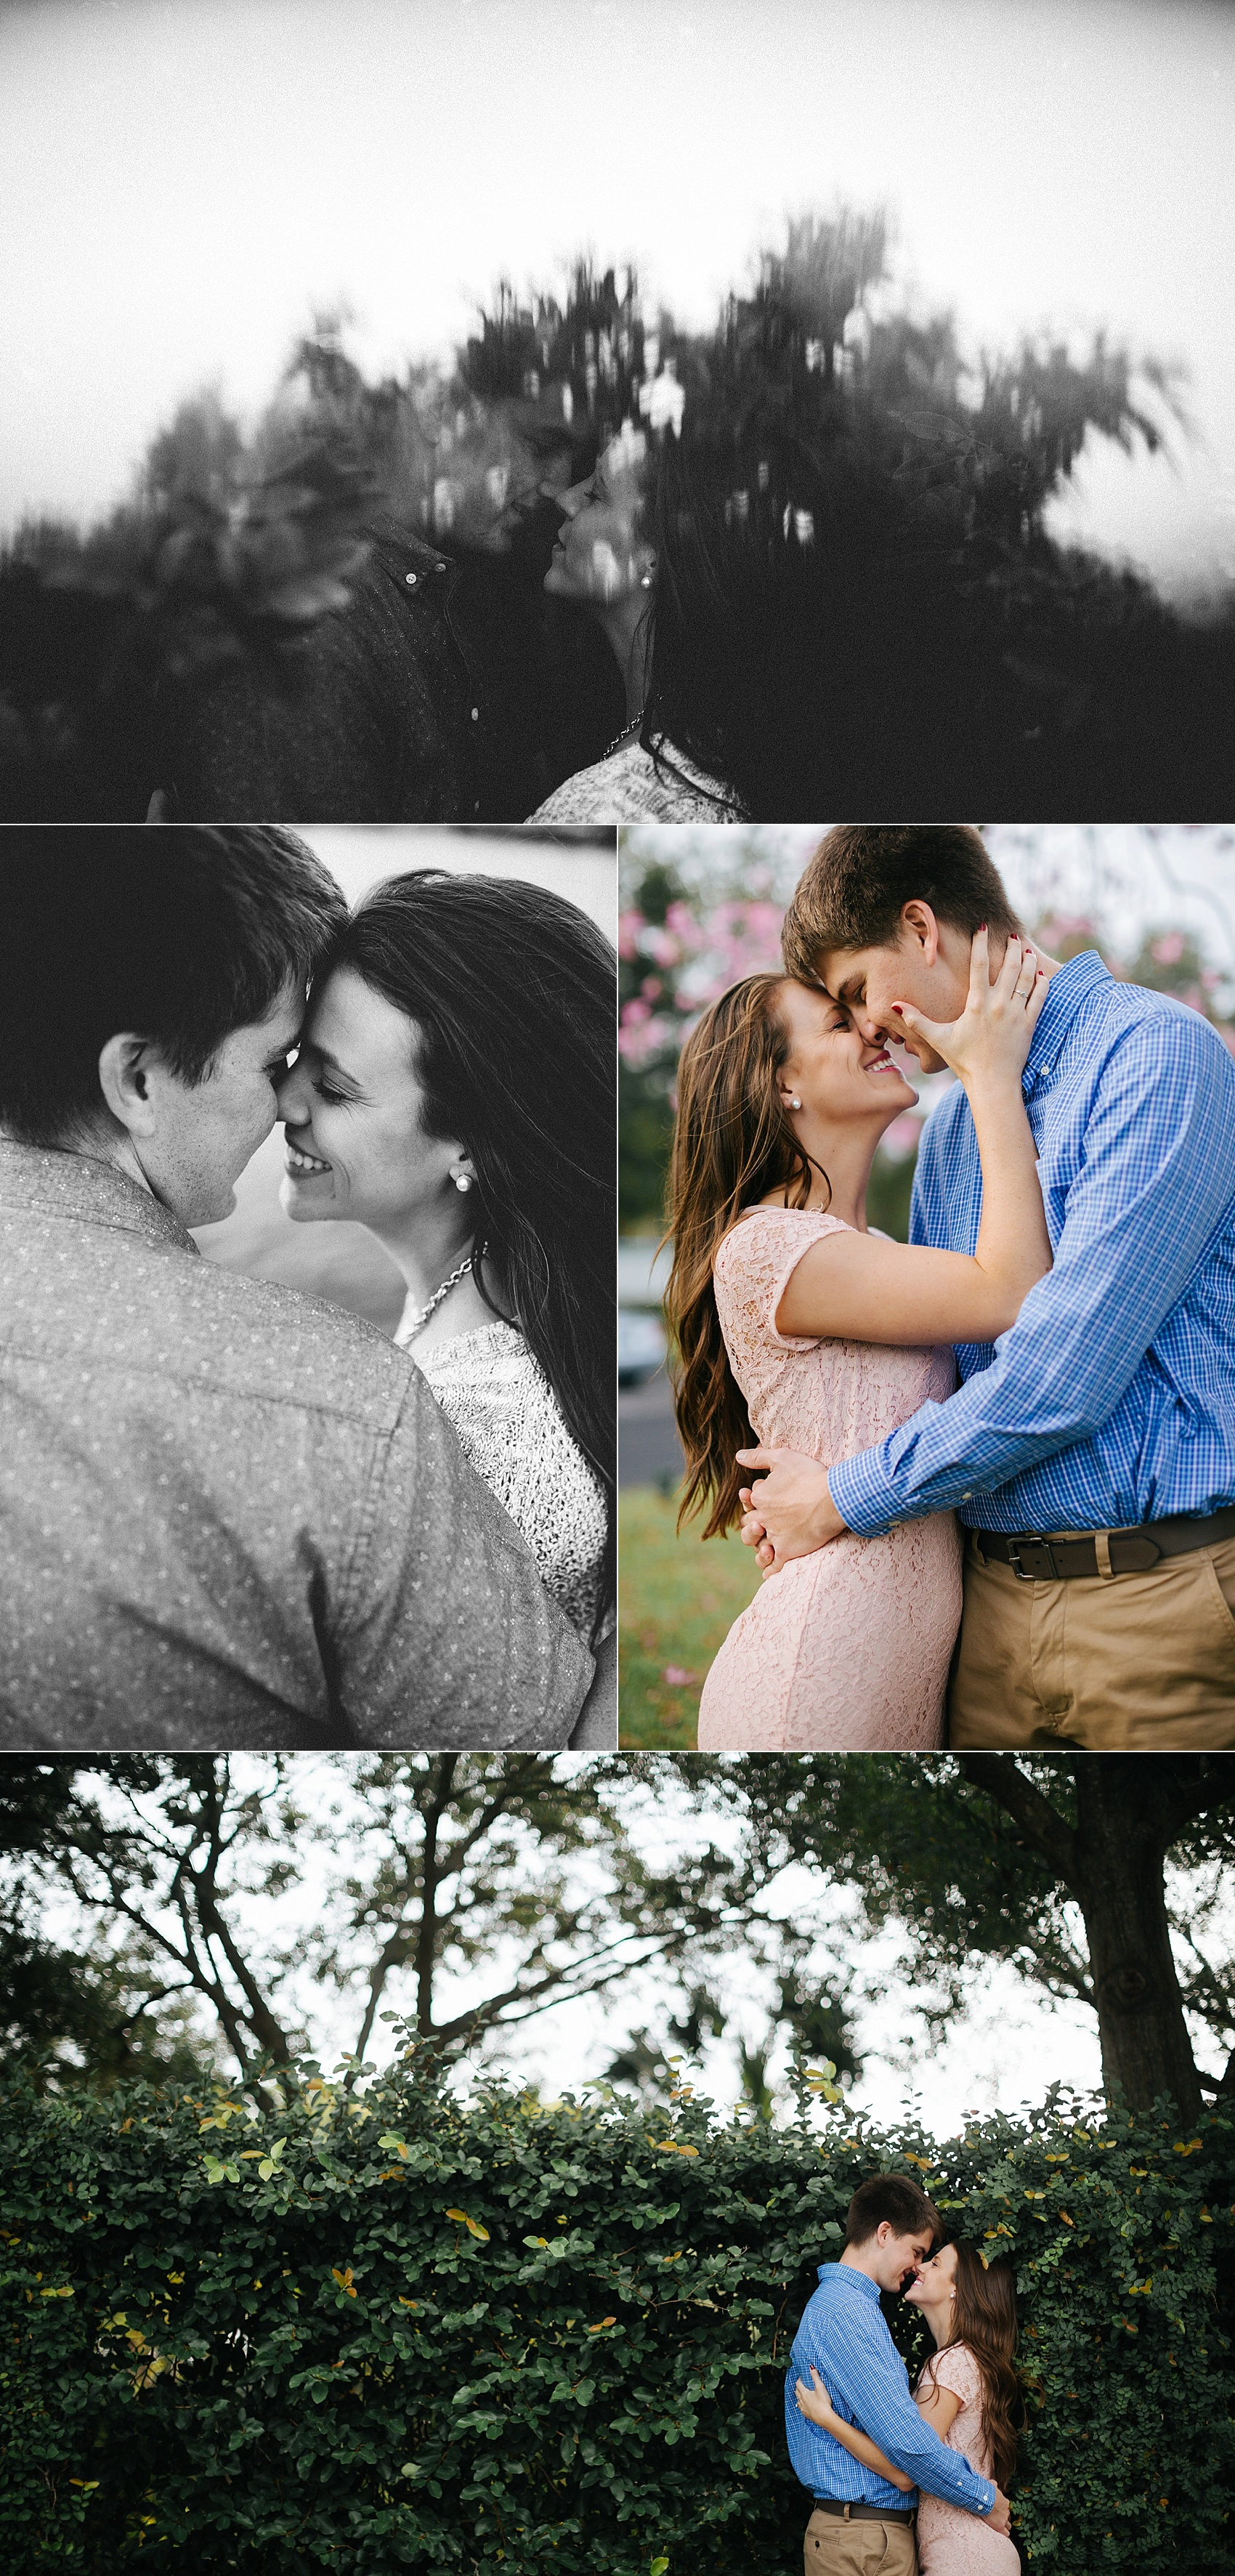 jake-and-katie-engagement-photos-12